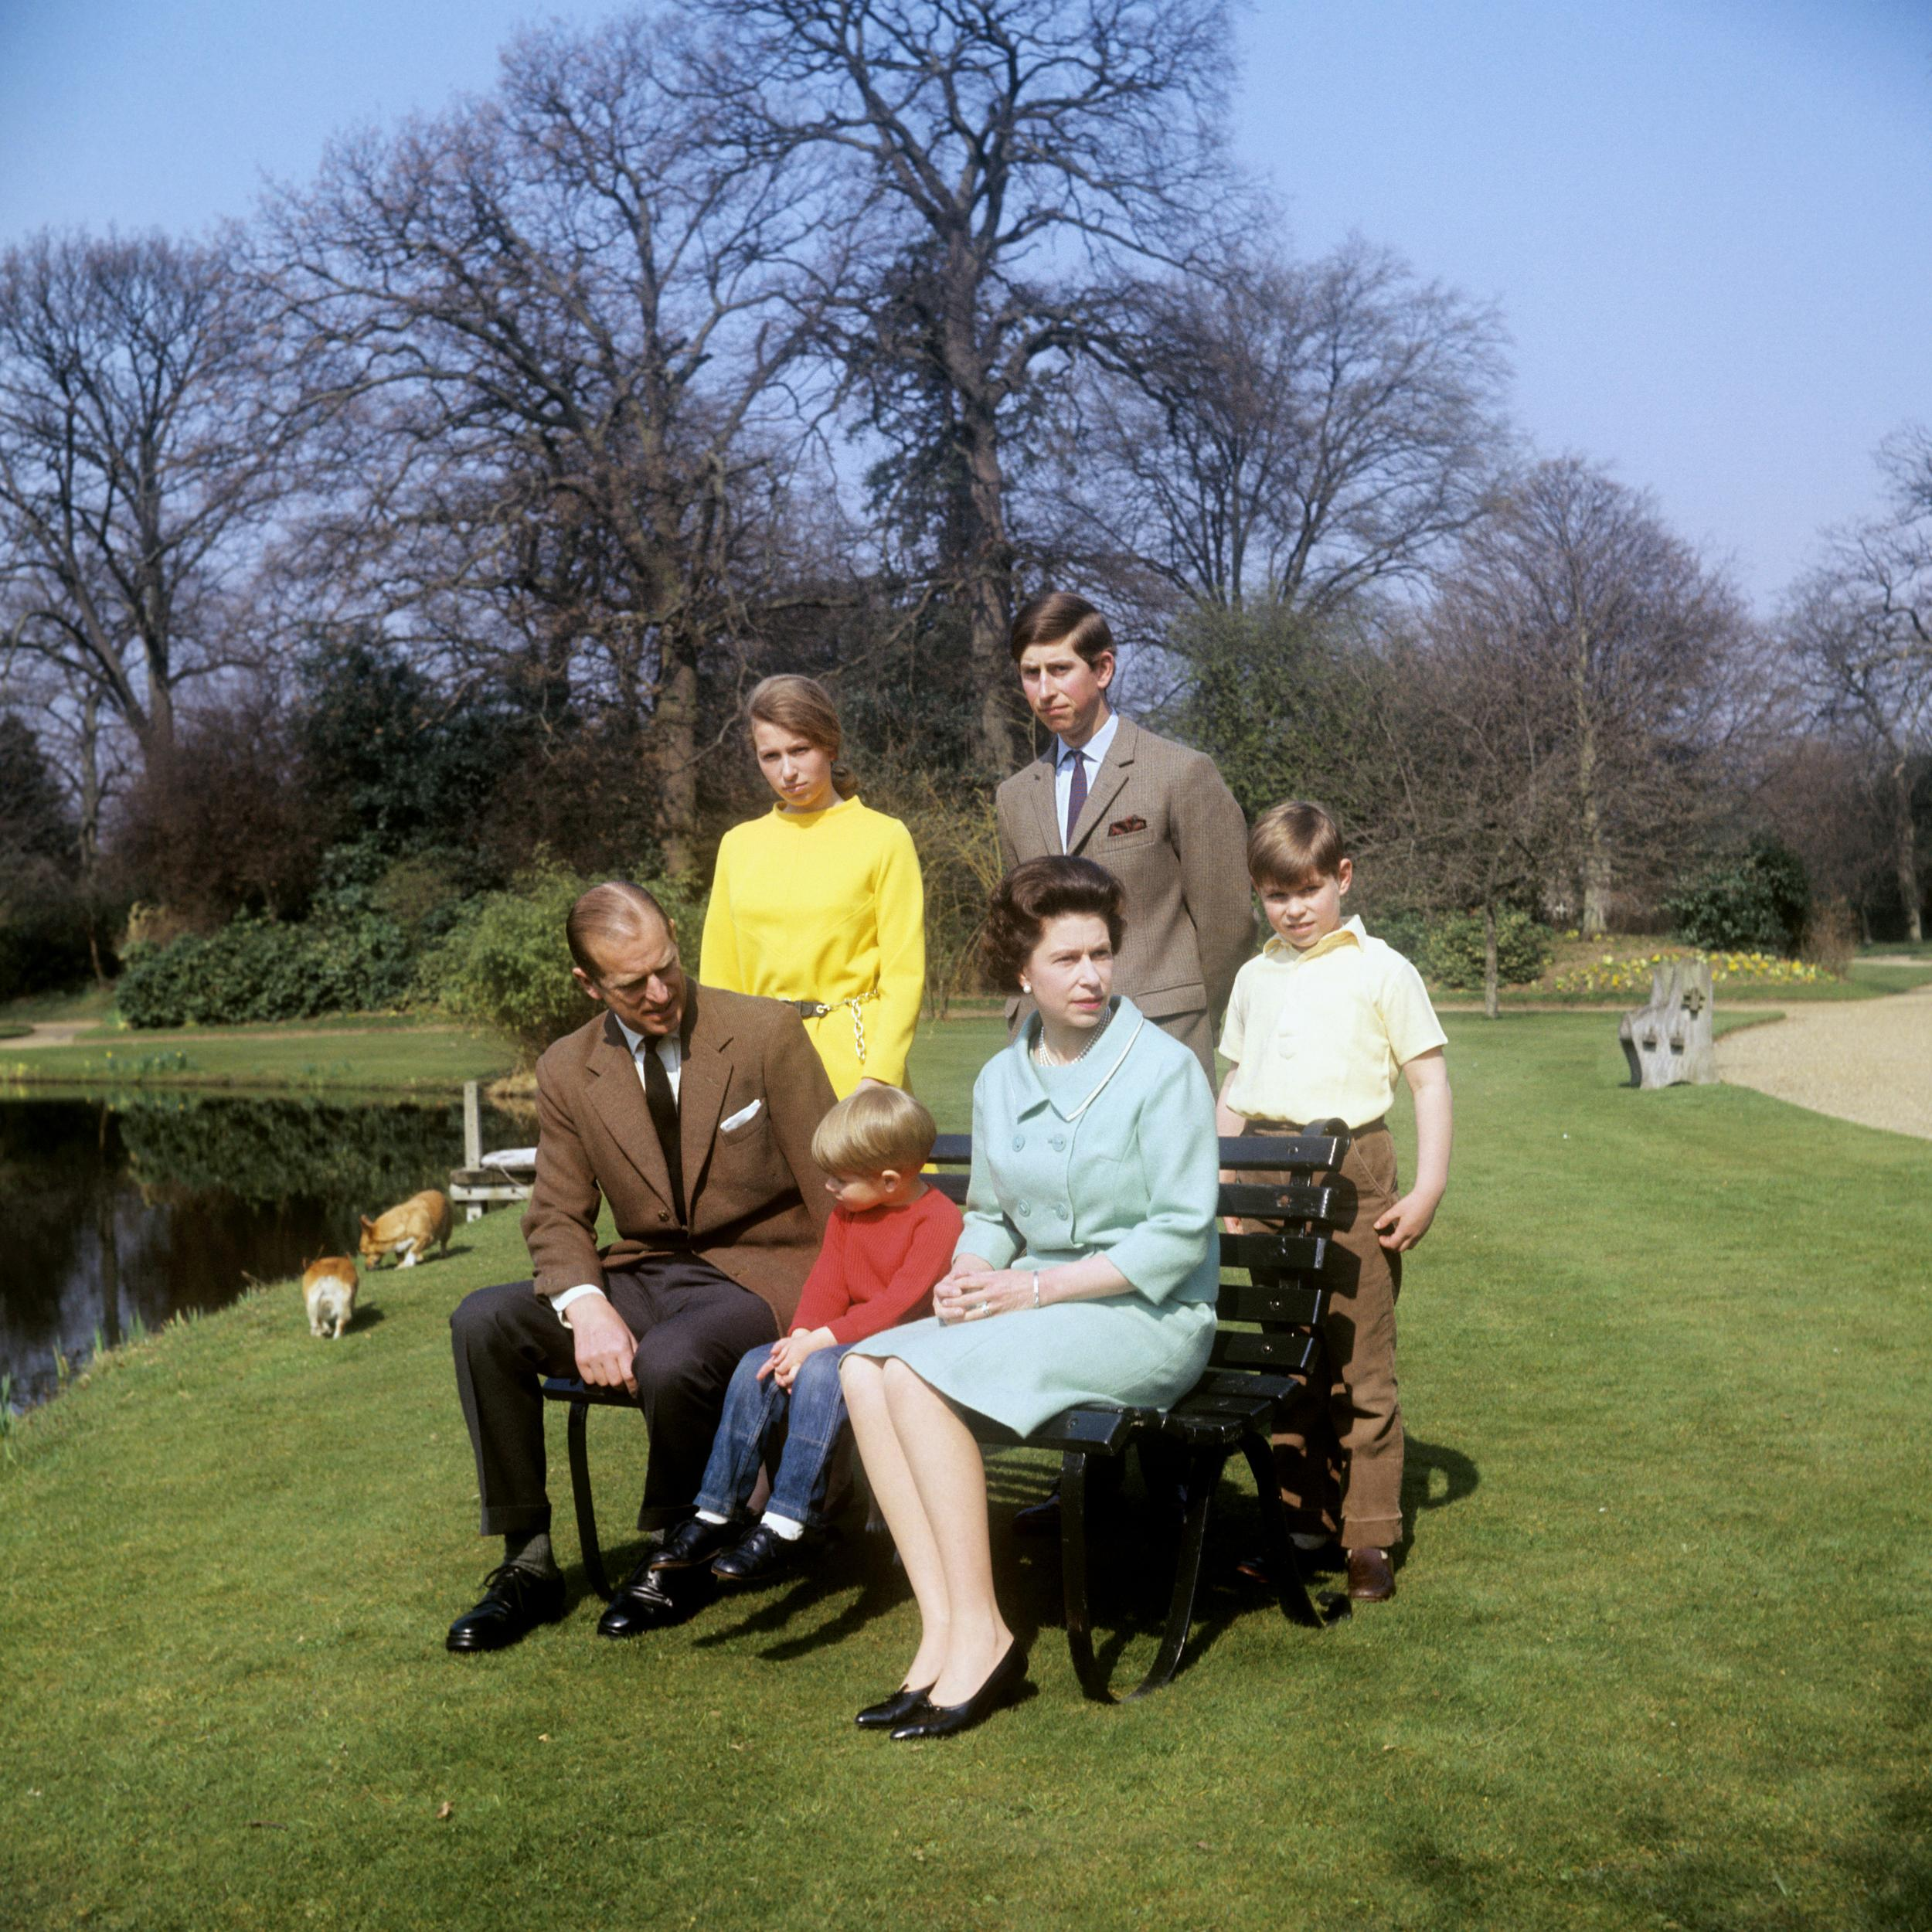 The Royal Family in the grounds of Frogmore House, Windsor, Berkshire. Left to right: Duke of Edinburgh, Princess Anne, Prince Edward, Queen Elizabeth II, Prince Charles and Prince Andrew.